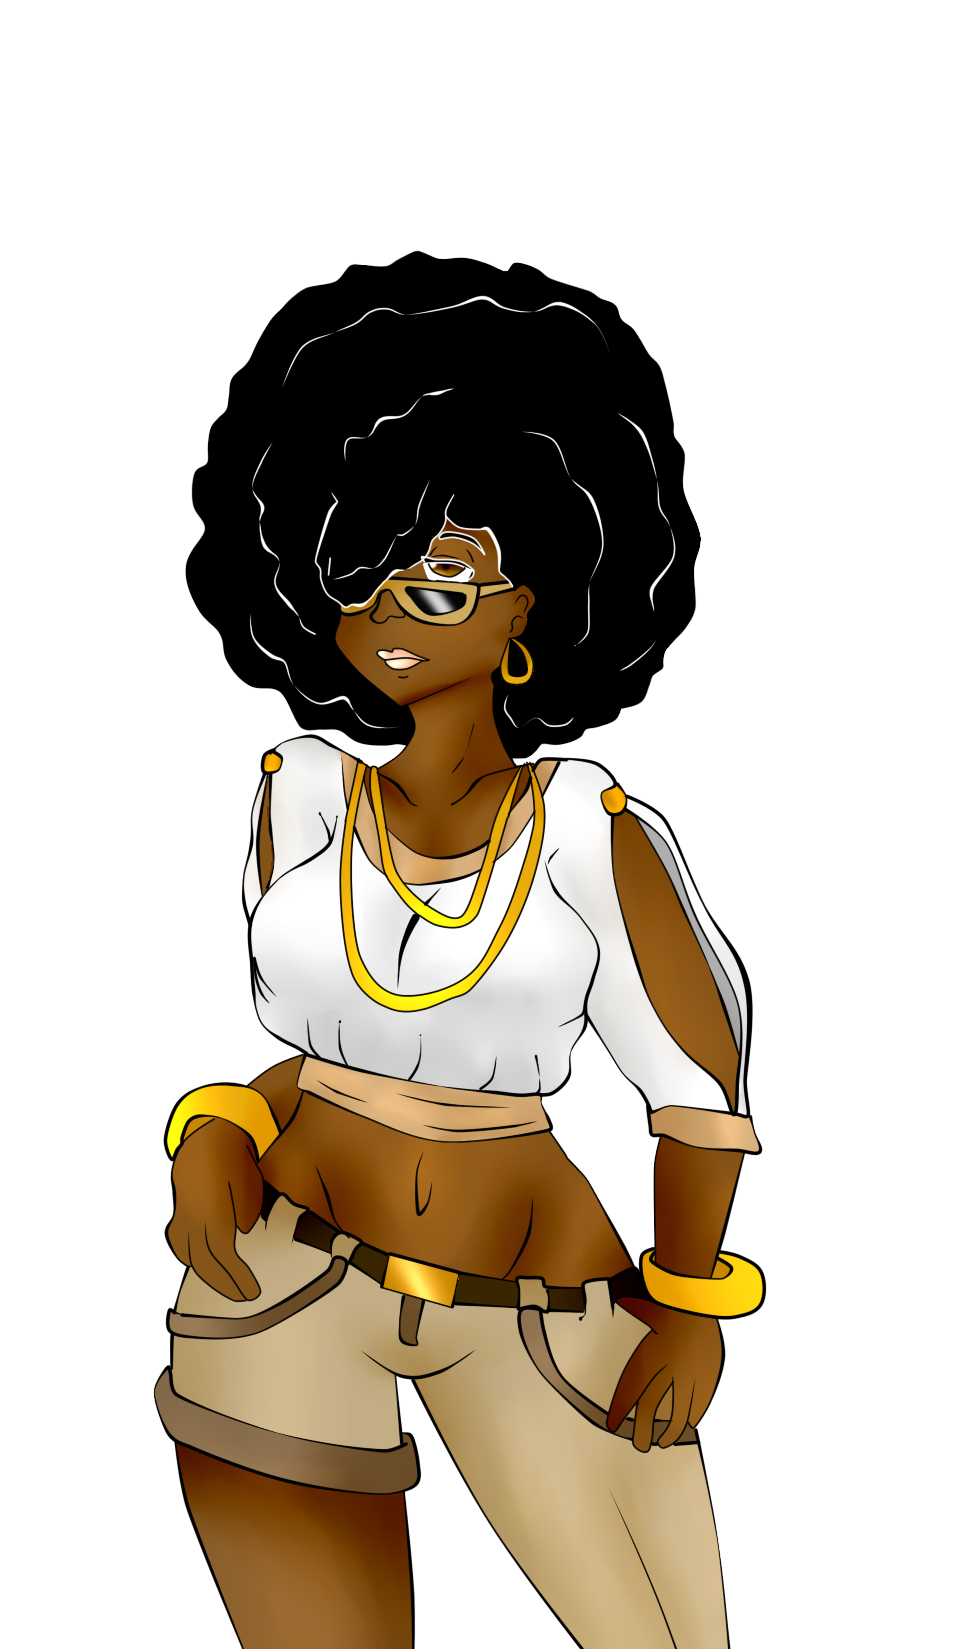 Afro Girl By Michilee On Deviantart